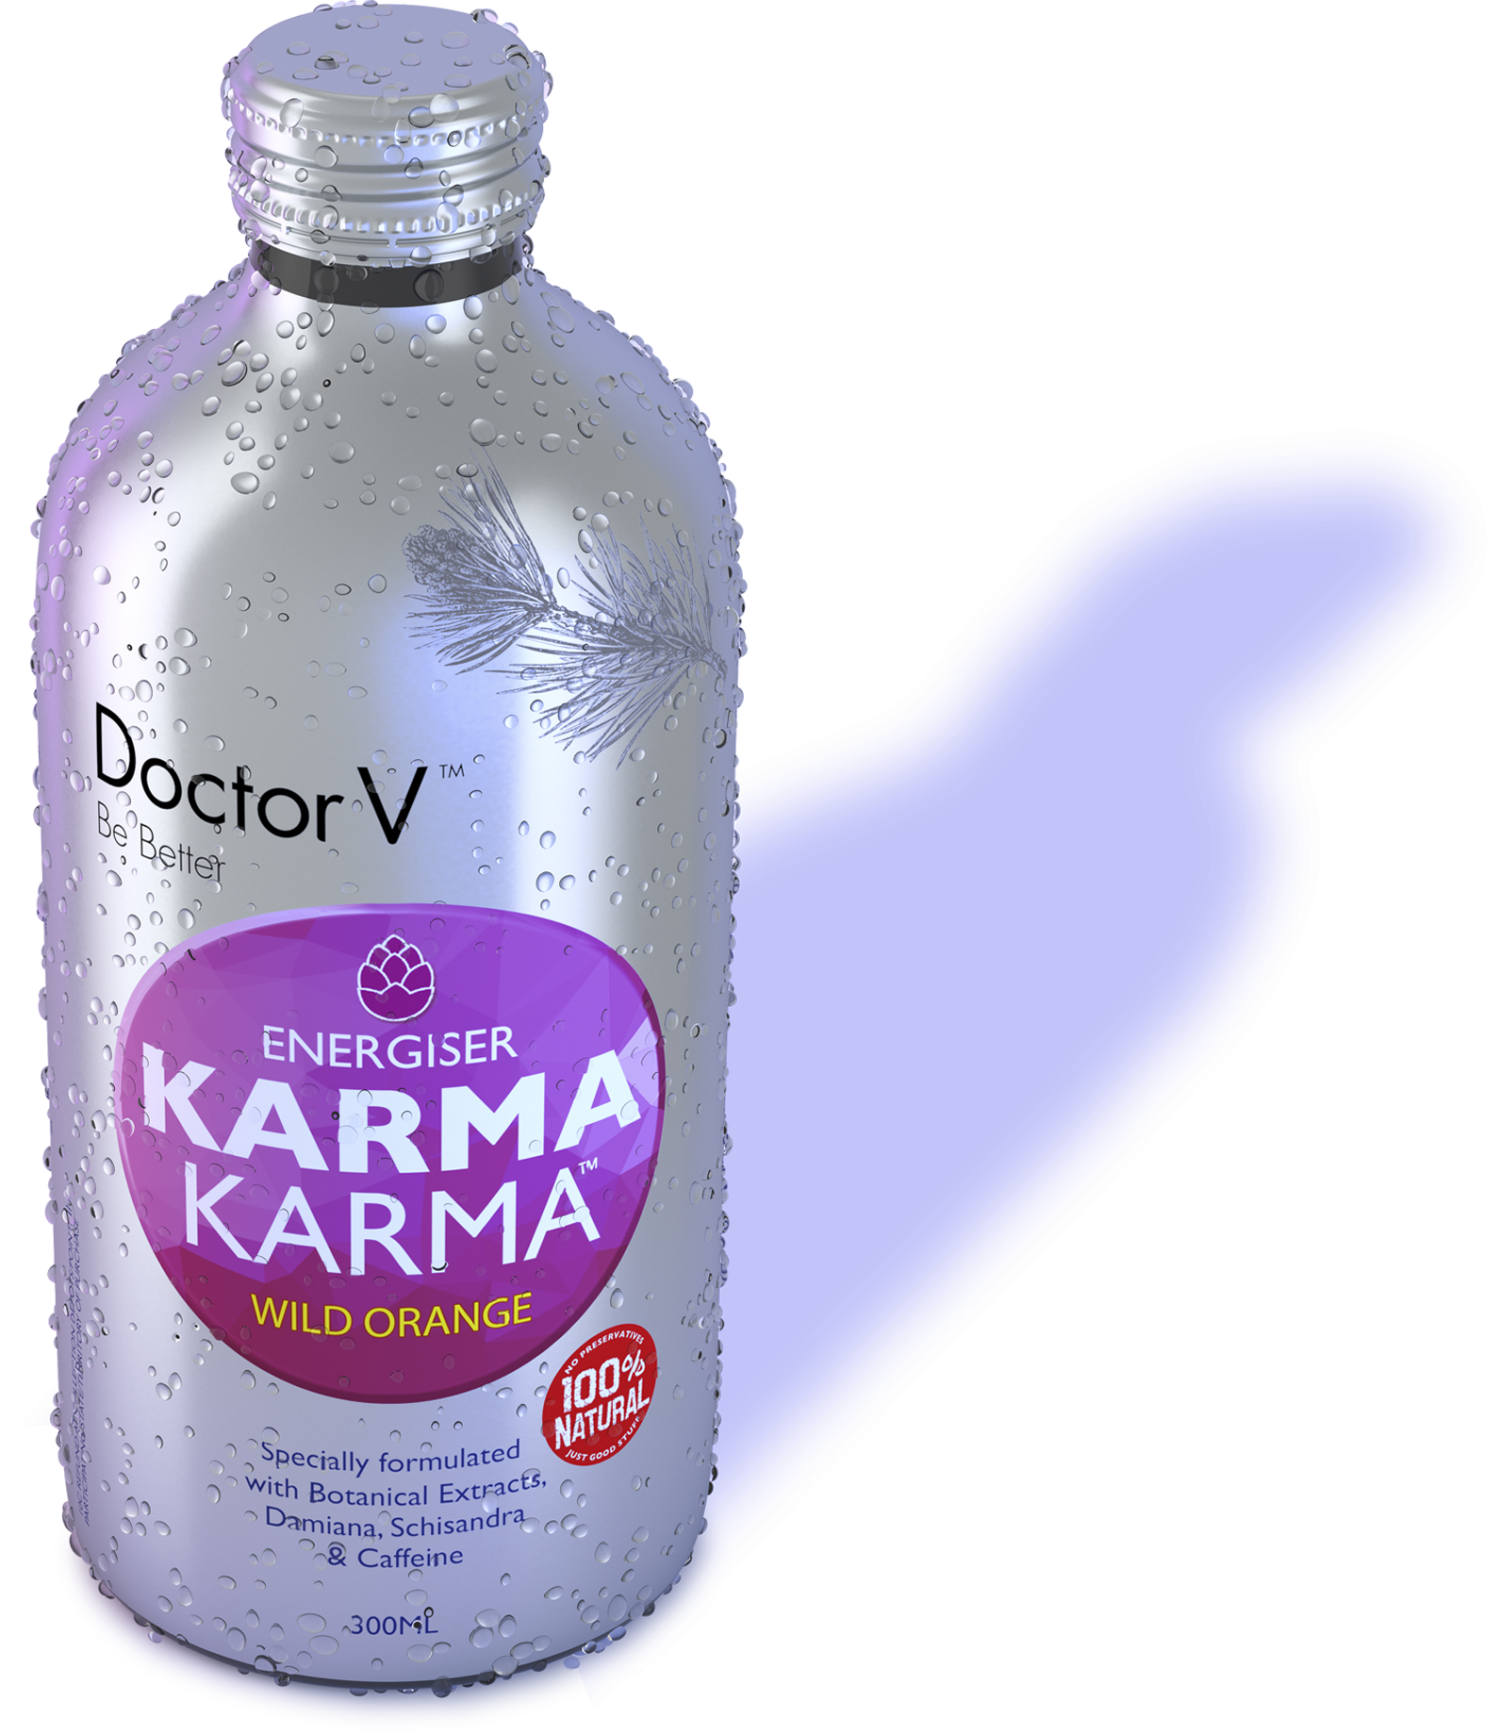 KARMA KARMA bottle